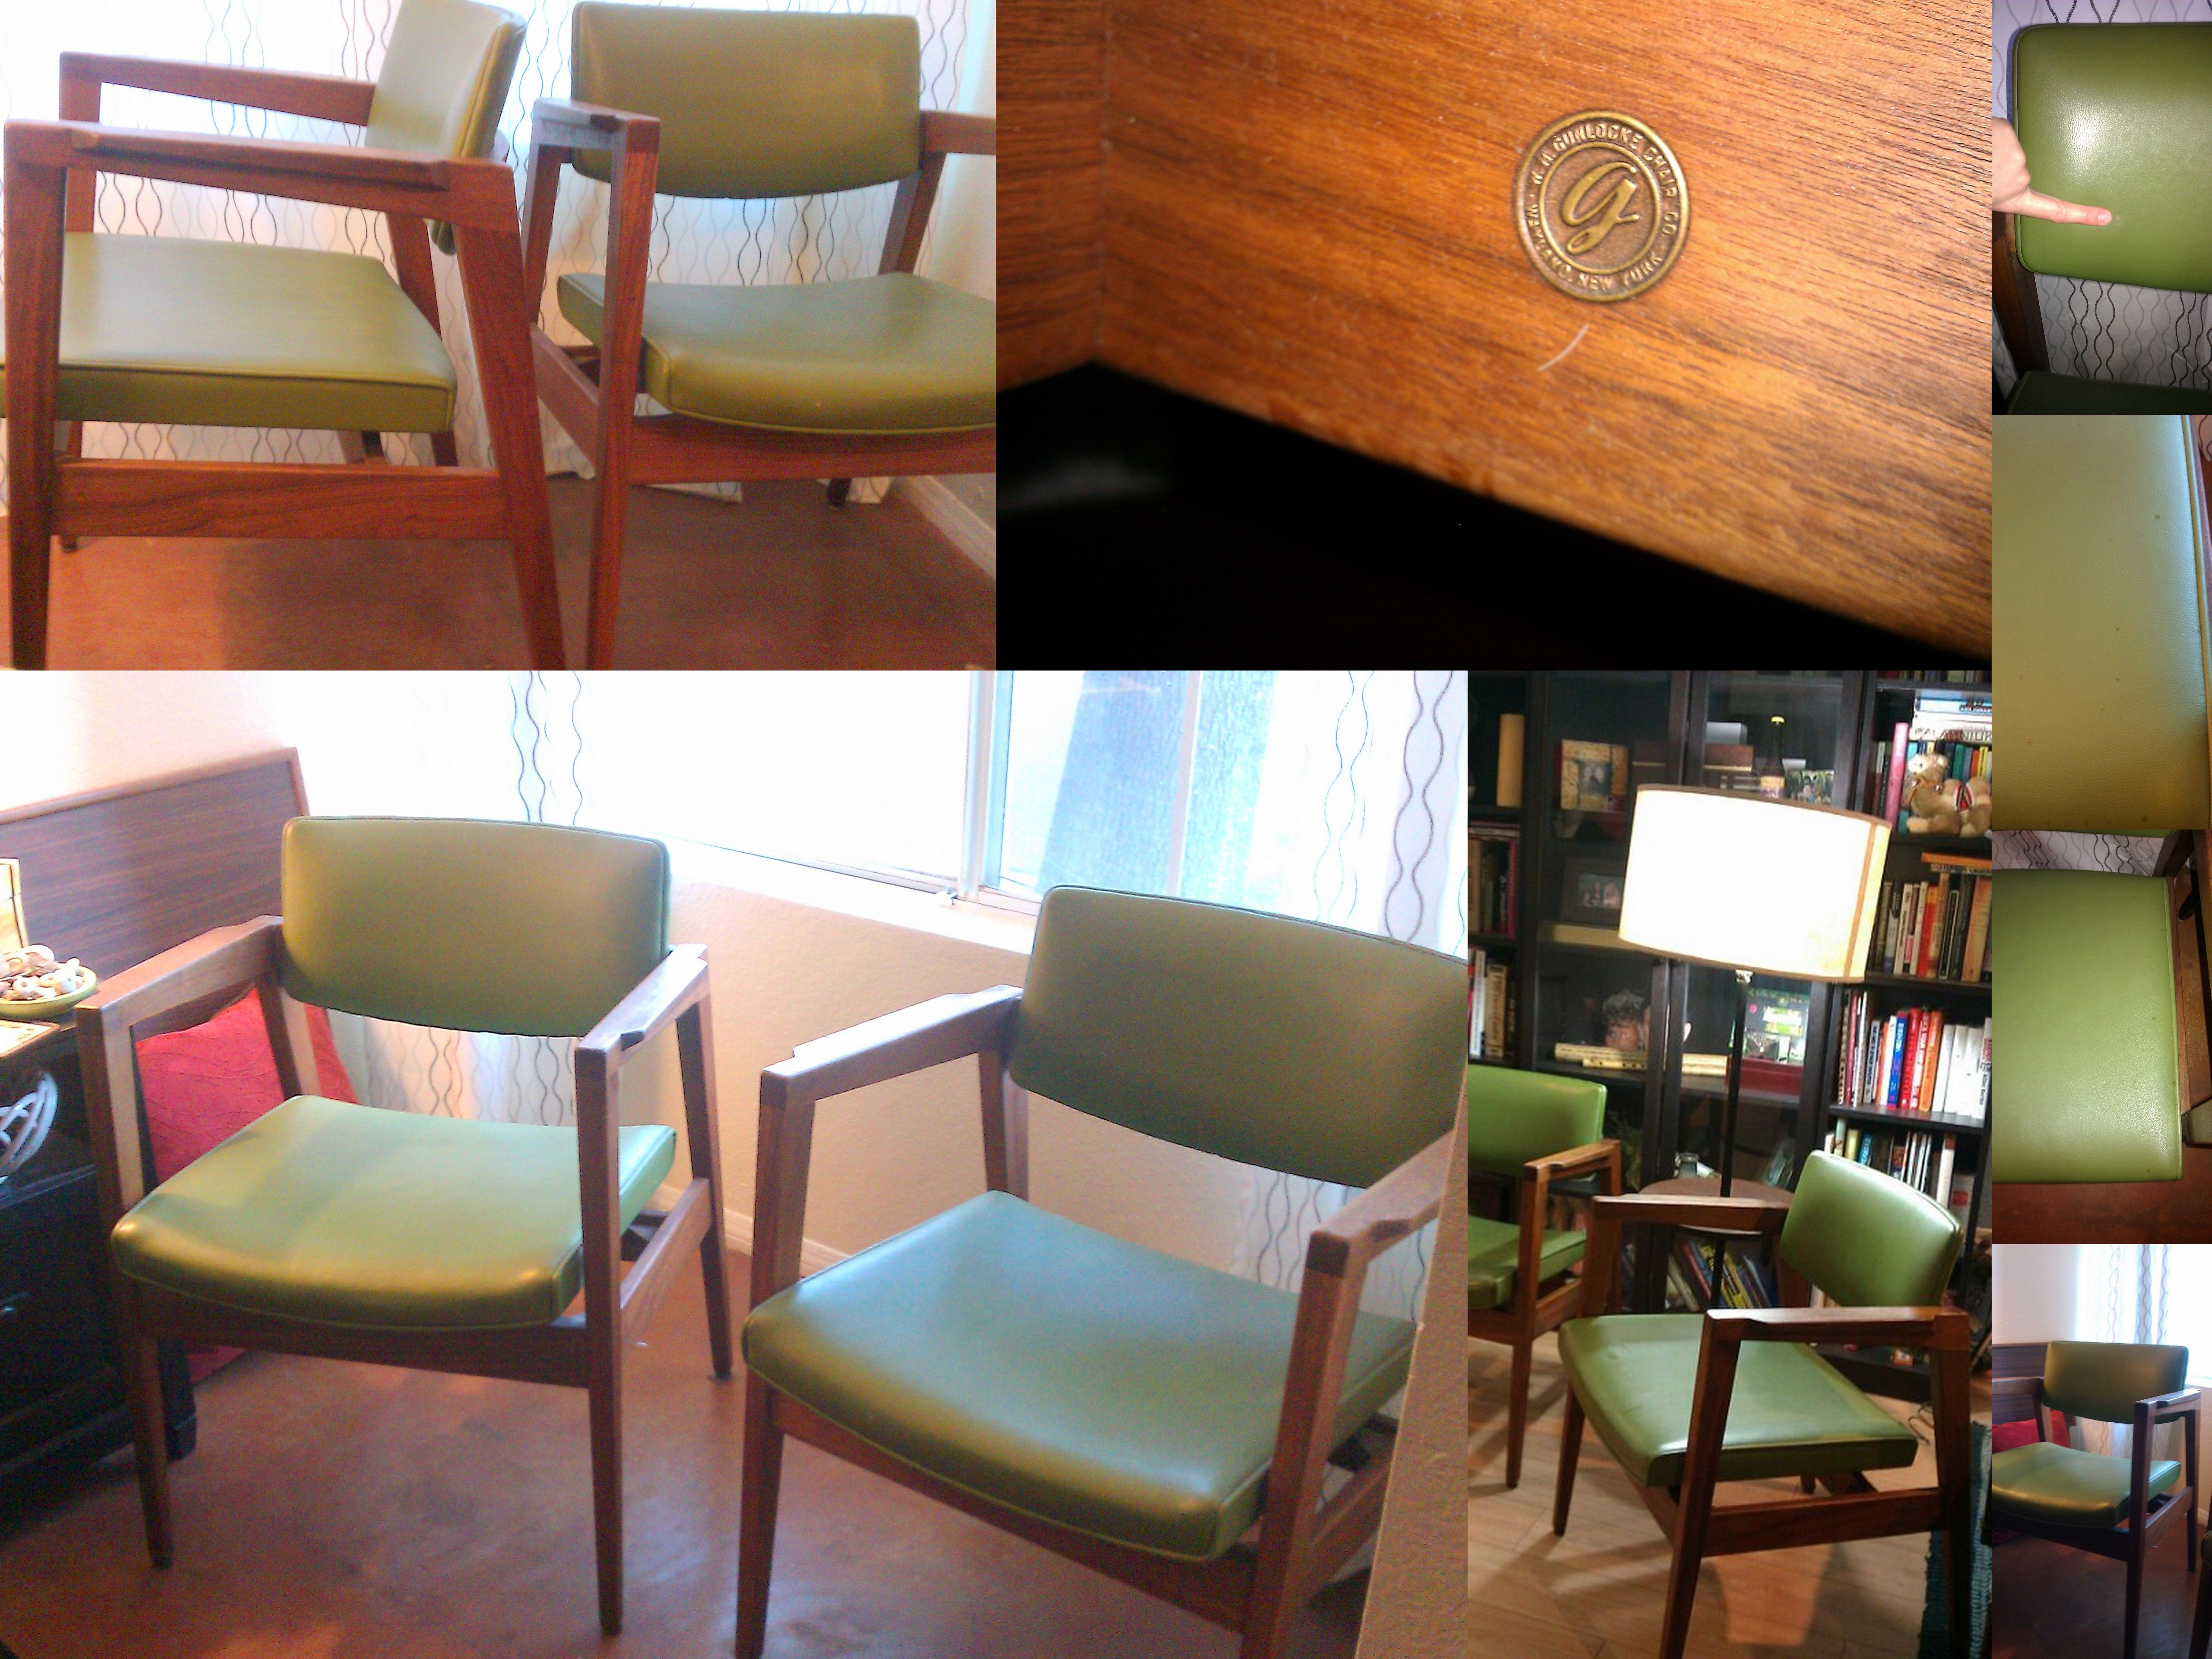 TWO Gorgeous 1960u0027s Mid Century Modern Chairs From Gunlocke Furniture  Company.